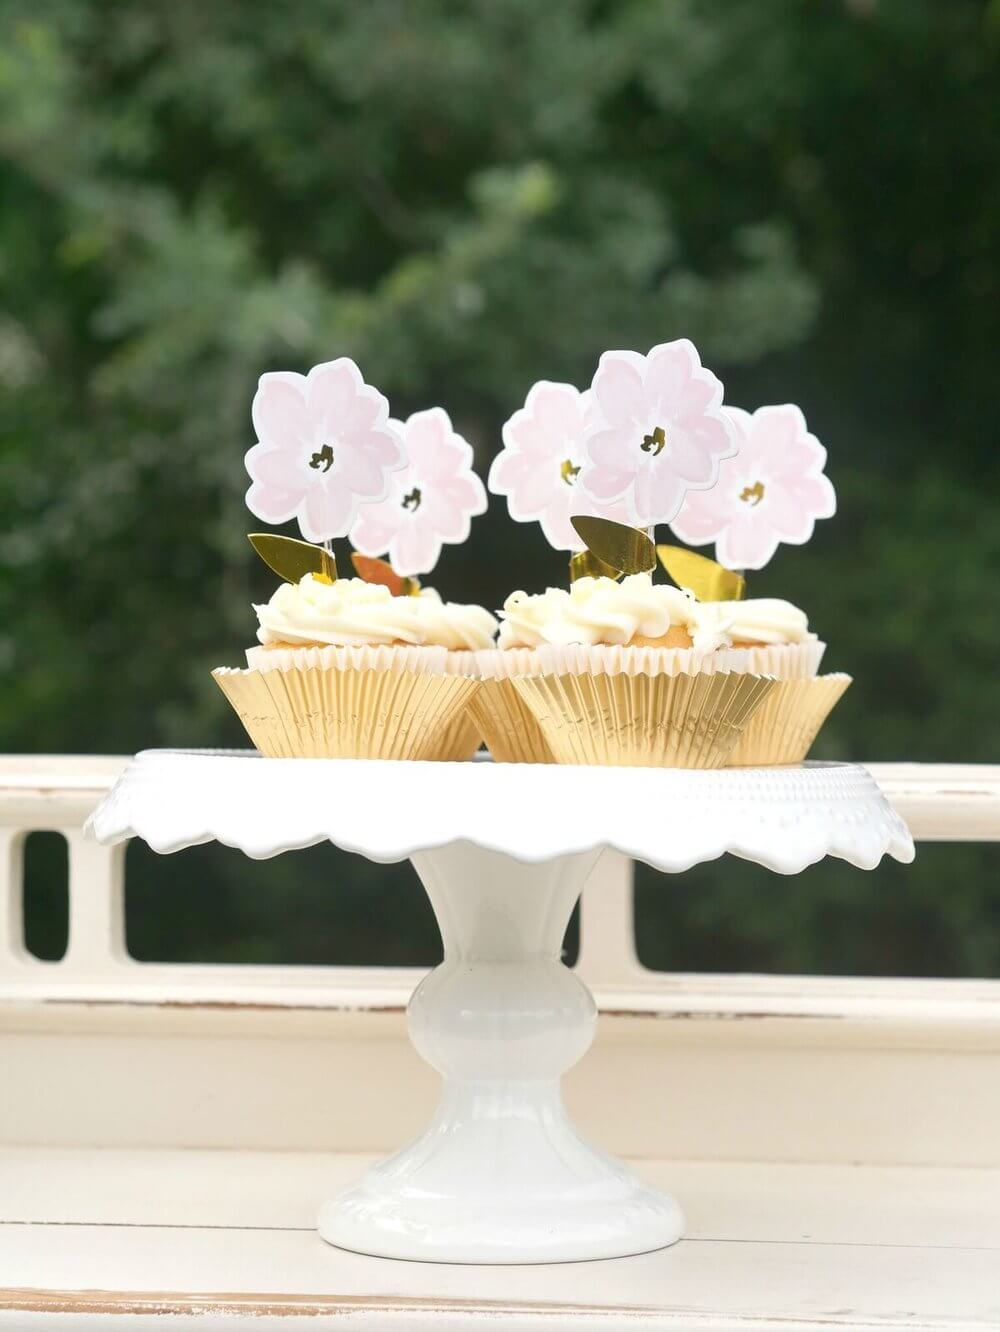 French Cottage Bridal Shower Ideas / Outdoor Bridal Shower ideas and decor / Pastel colors Bridal Shower Ideas / Floral Cupcake idea / Shabby Chic Bridal Shower Ideas / Bridal Shower dessert table idea / Baby Shower dessert table idea / Styled by Carolina from MINT Event Design / www.minteventdesign.com